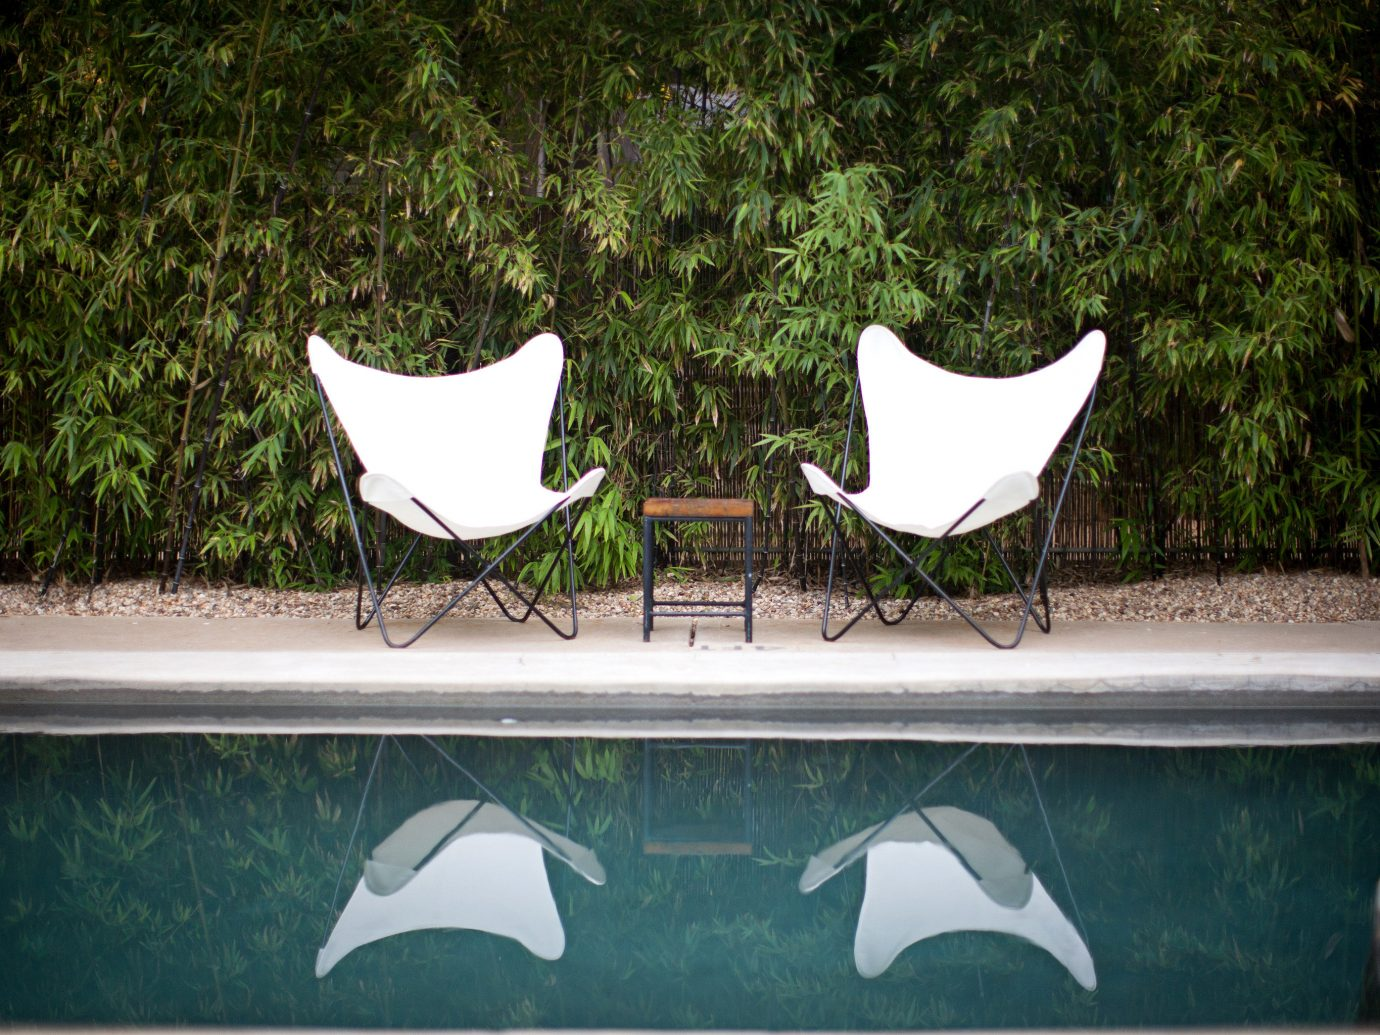 Design Grounds Hip Hotels Lounge Outdoors Pool tree outdoor green leaf art